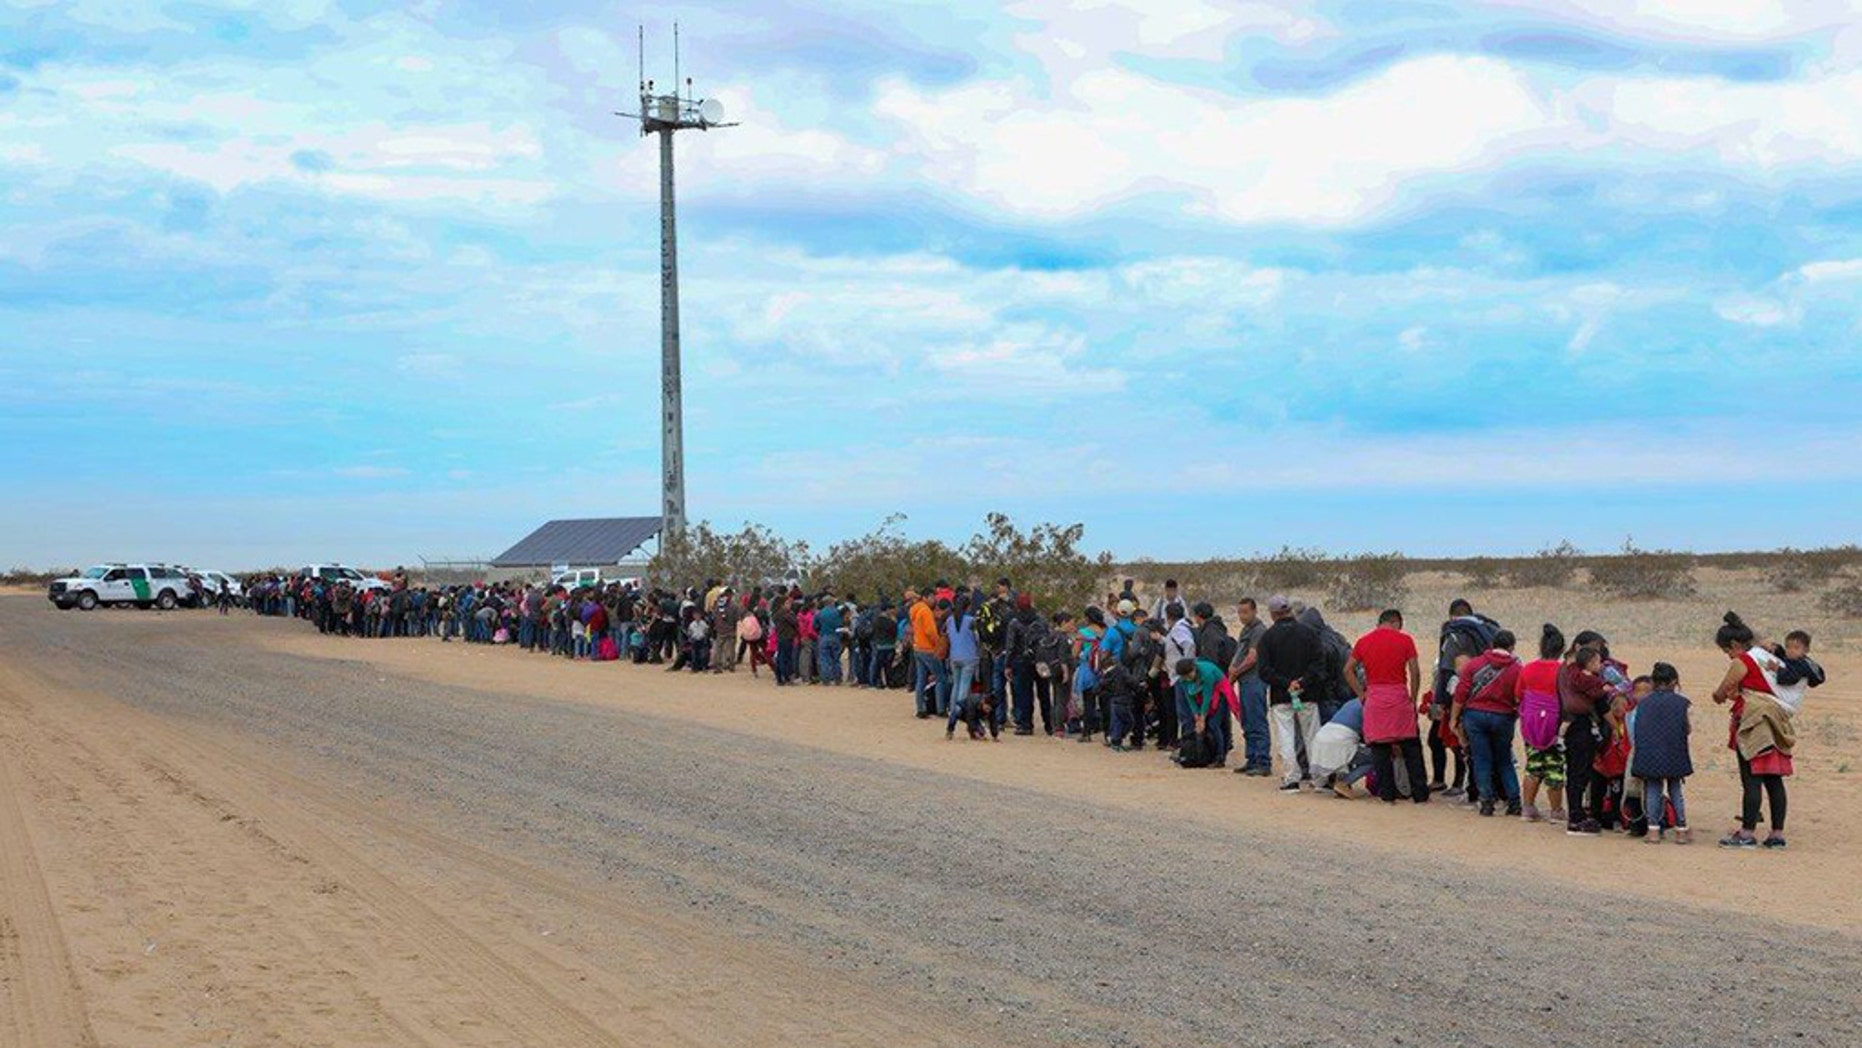 A group of 376 Central Americans reportedly made their way into the U.S. at the Arizona border this week by using short holes that were dug beneath the barrier, according to Border Patrol.